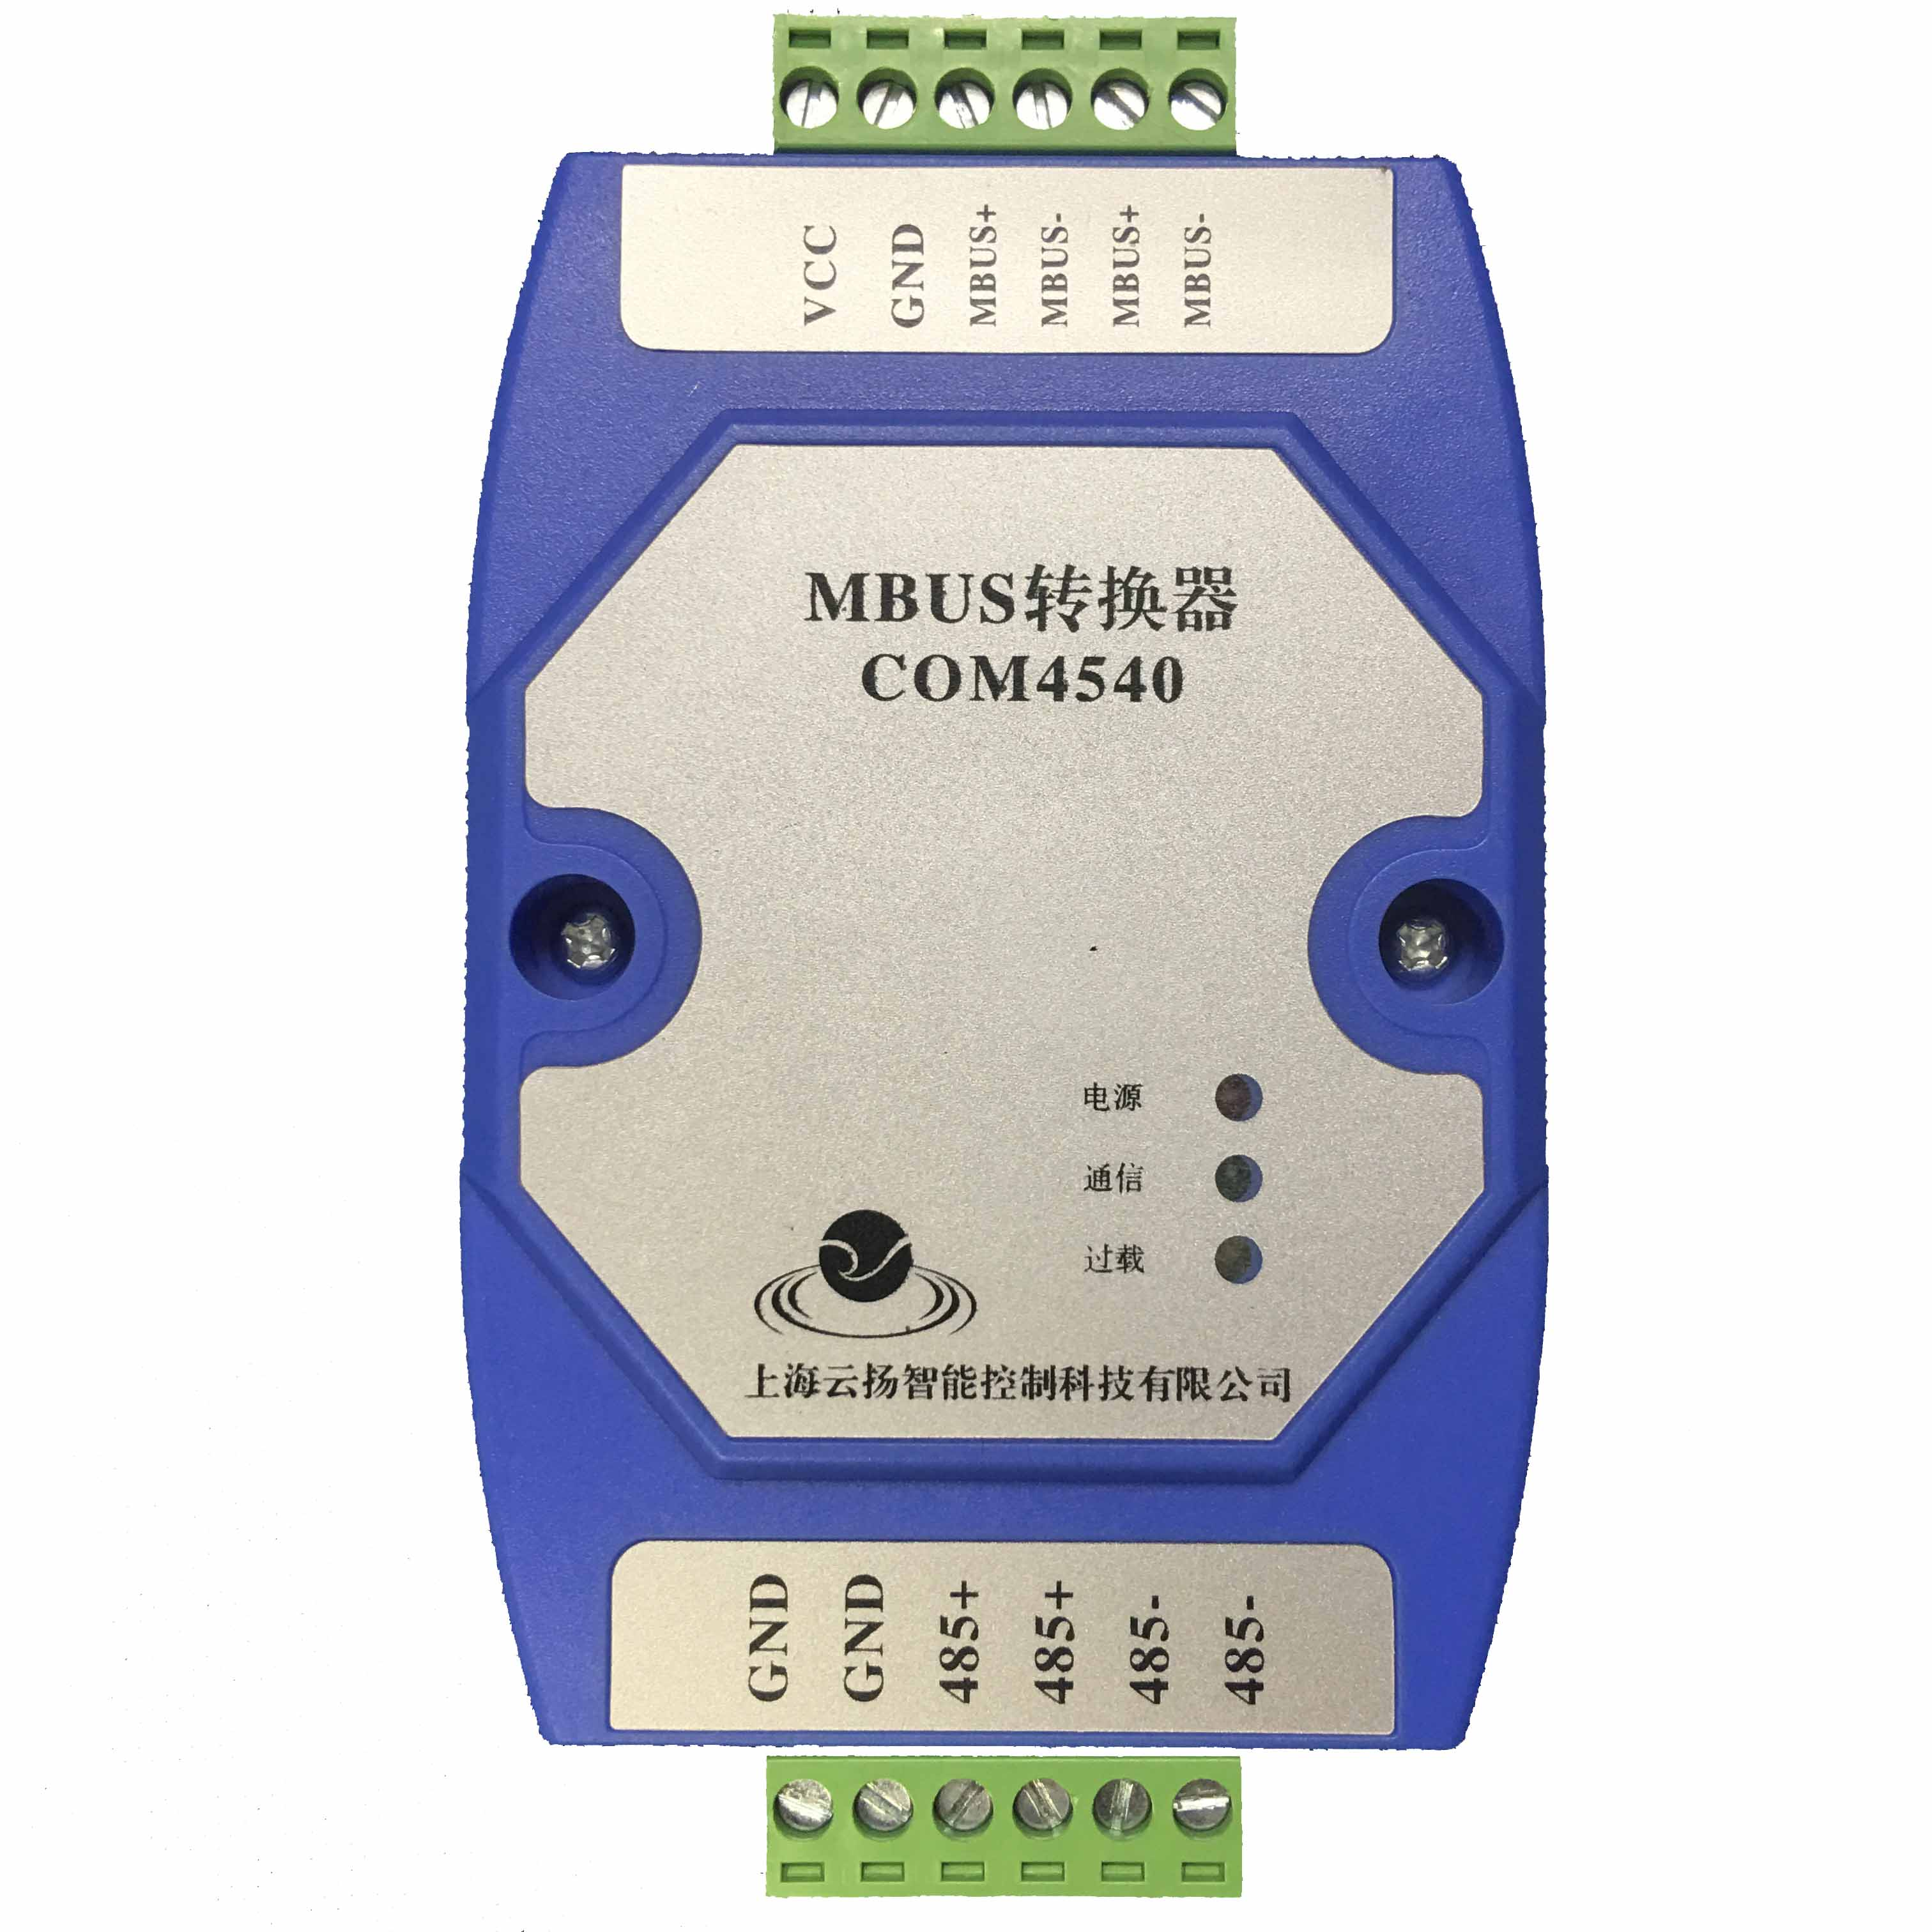 M-BuS /MODBUS Isolation Protocol Converter PLC/ Configuration Touch Screen 704201 000 [ data bus components dk 621 0438 3s]